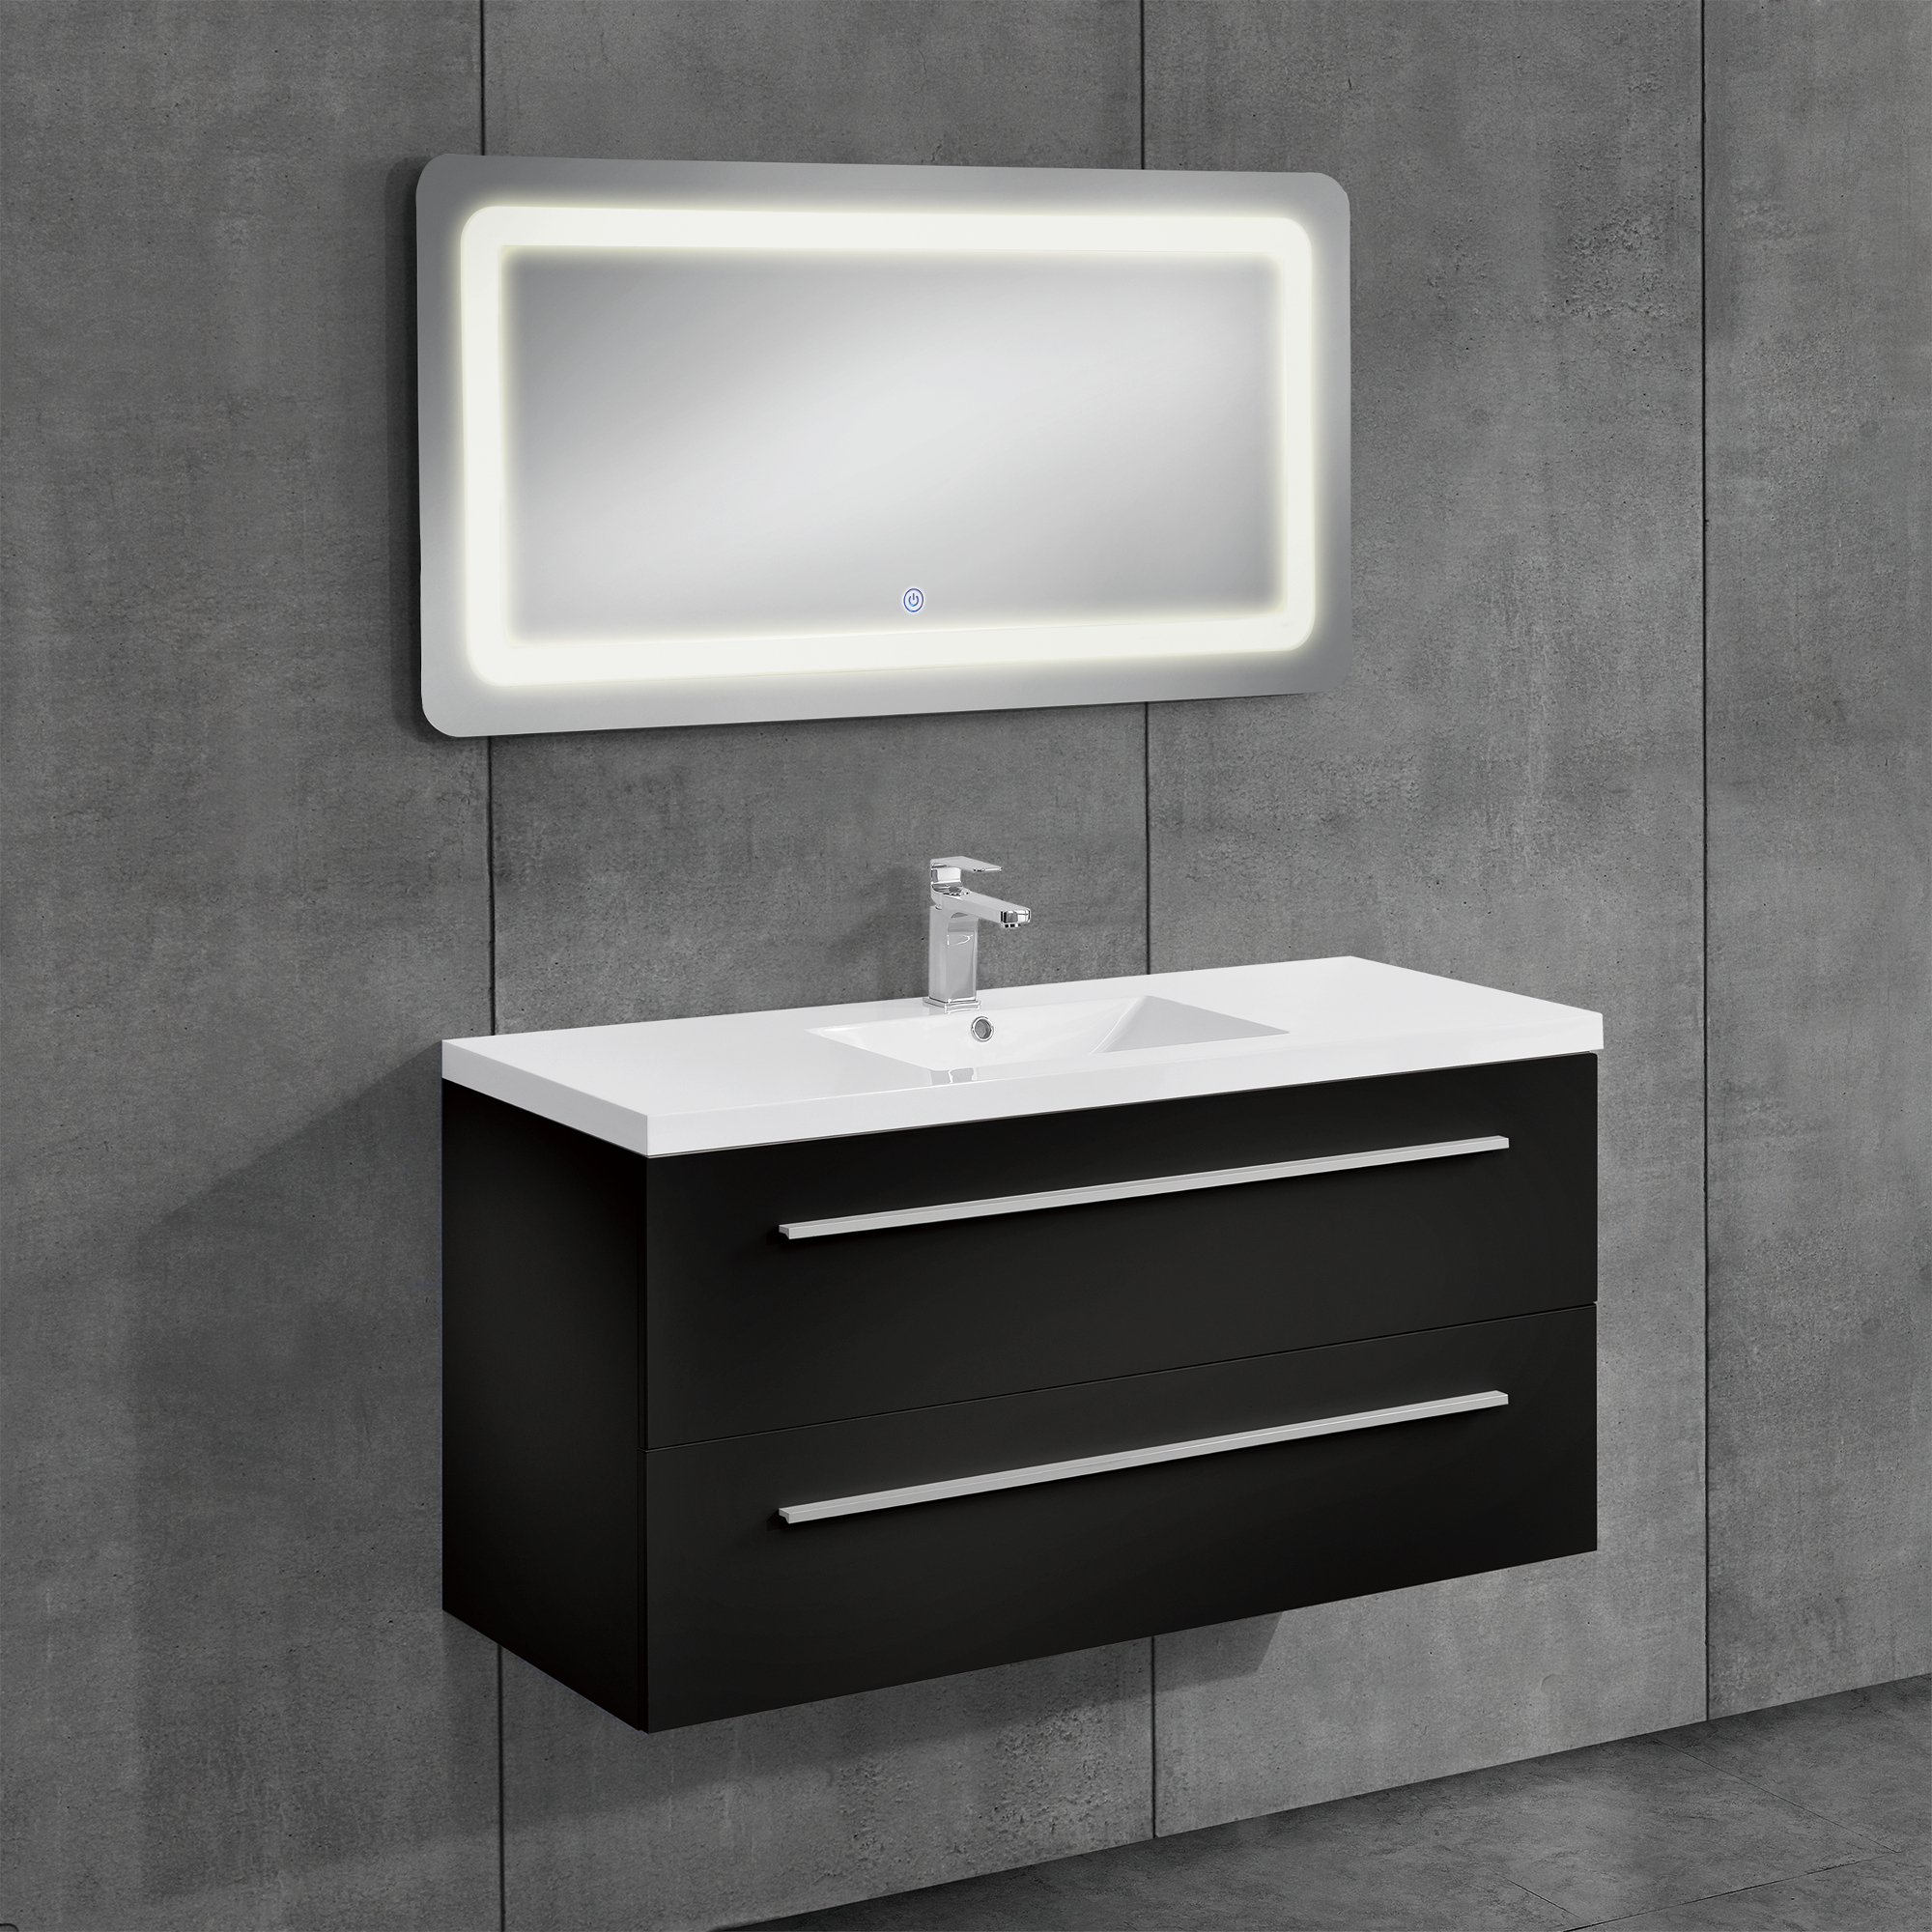 neuhaus armoire de salle bain meuble dessous lavabo noir 60x120cm ebay. Black Bedroom Furniture Sets. Home Design Ideas